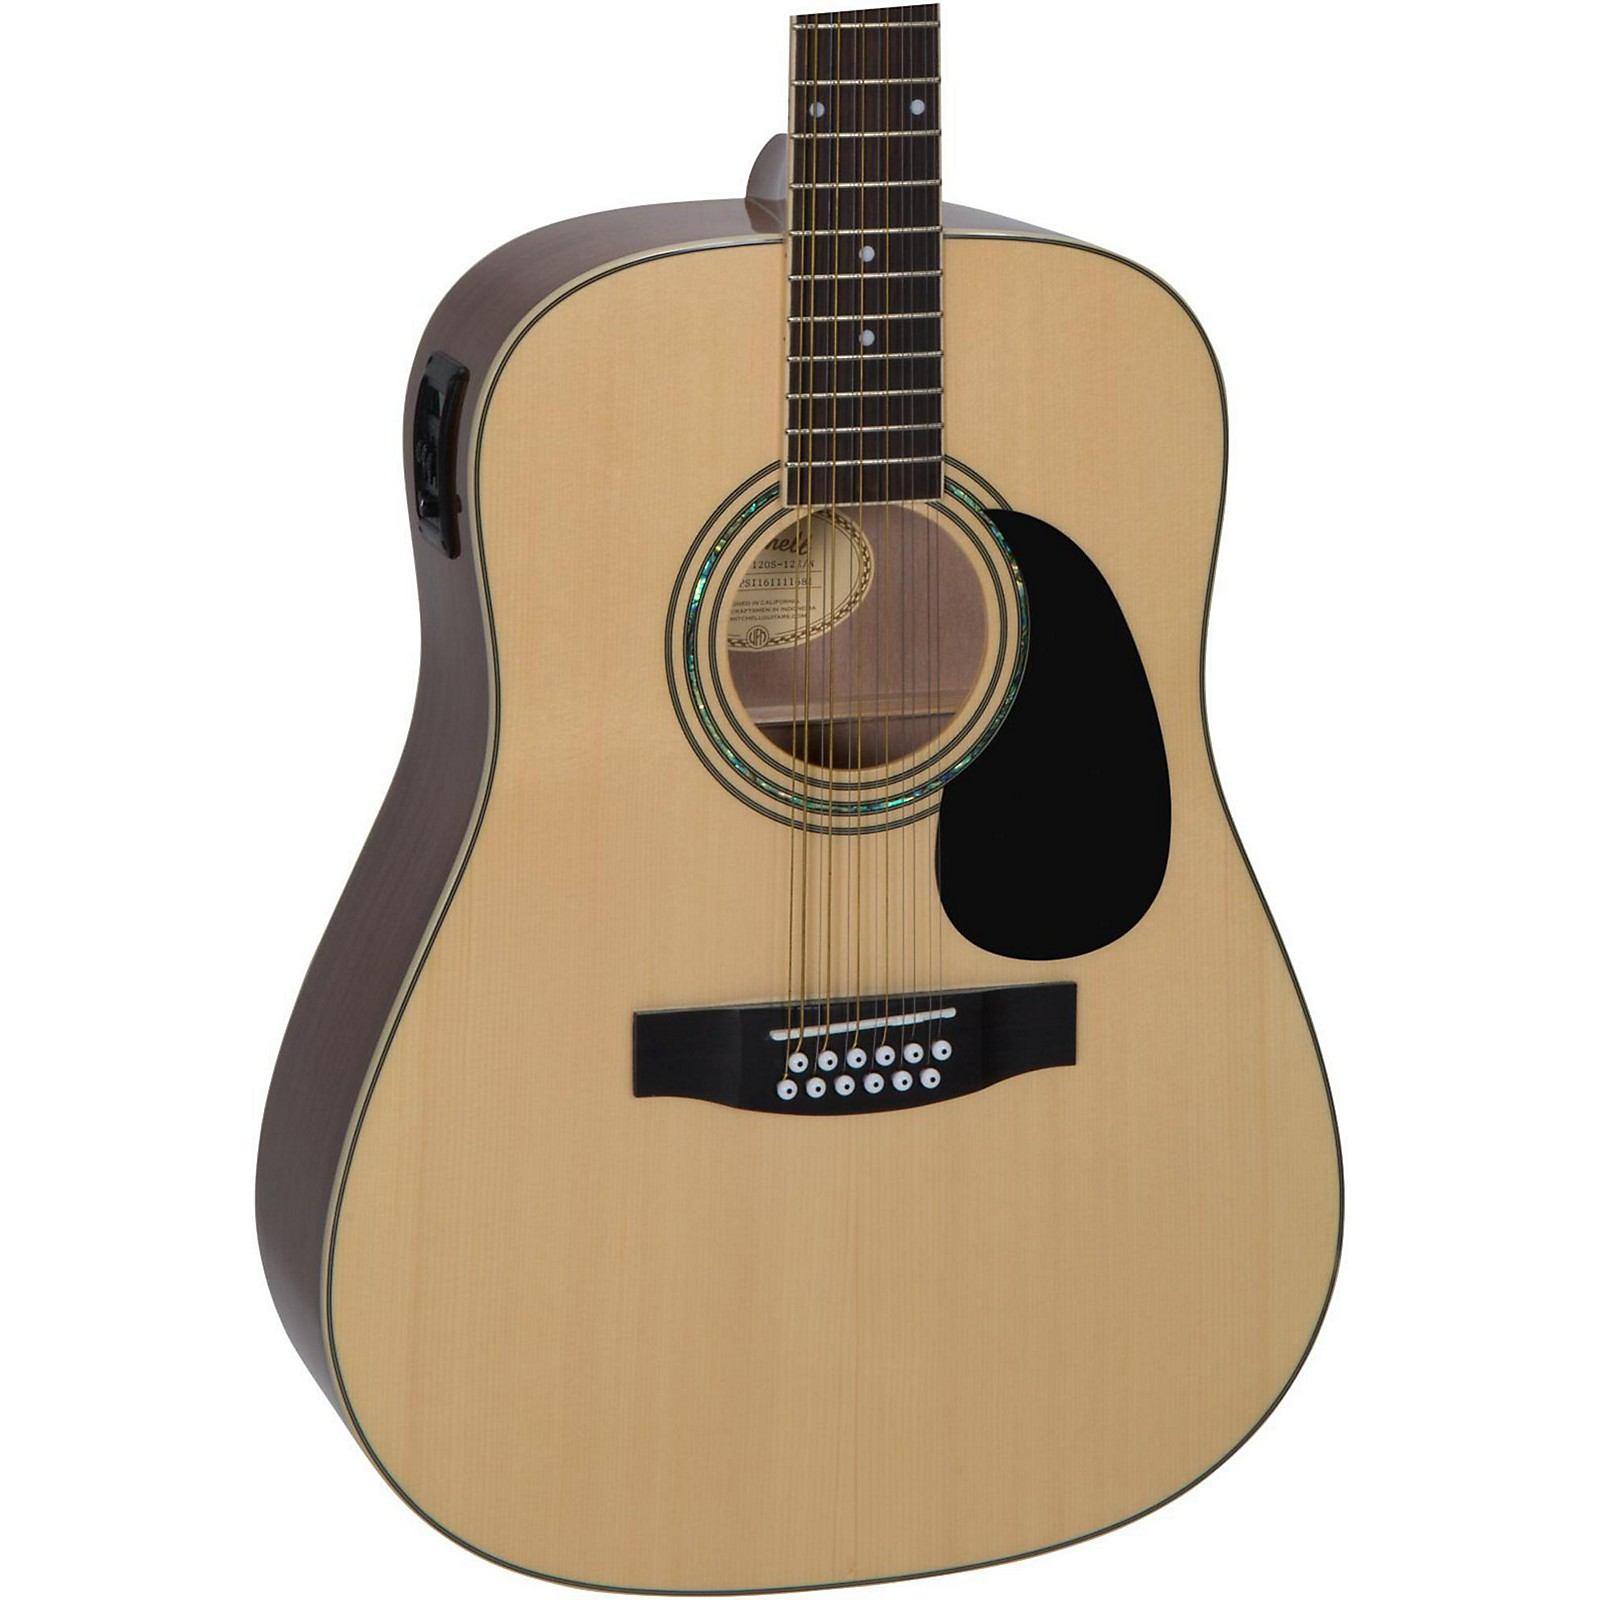 Mitchell D120S12E 12-String Dreadnought Acoustic-Electric Guitar